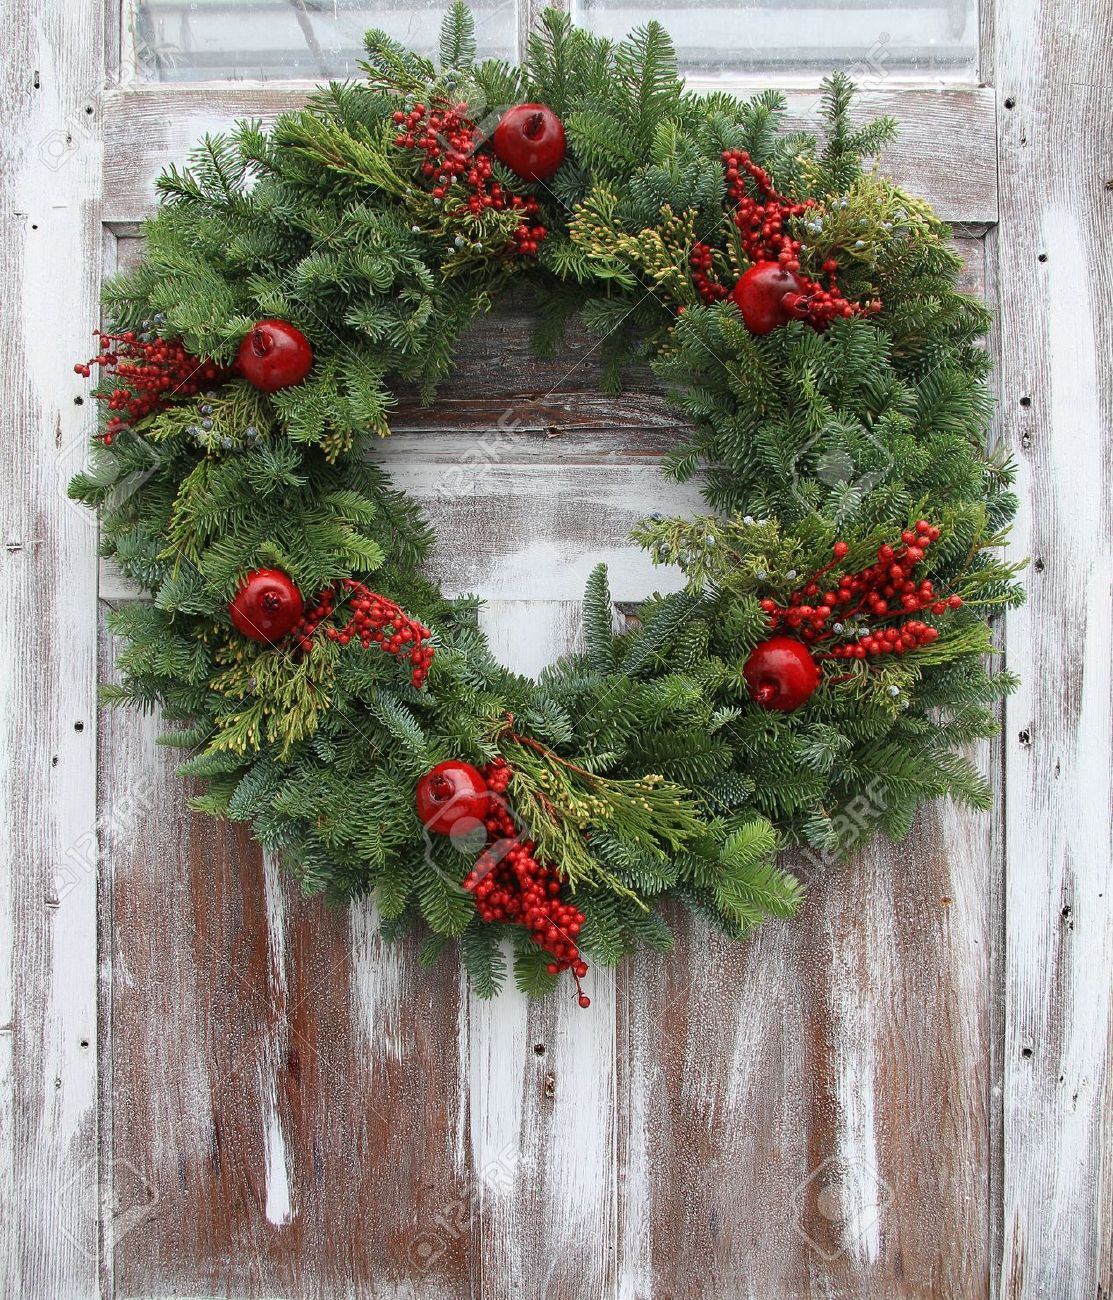 Christmas wreath on door clipart.